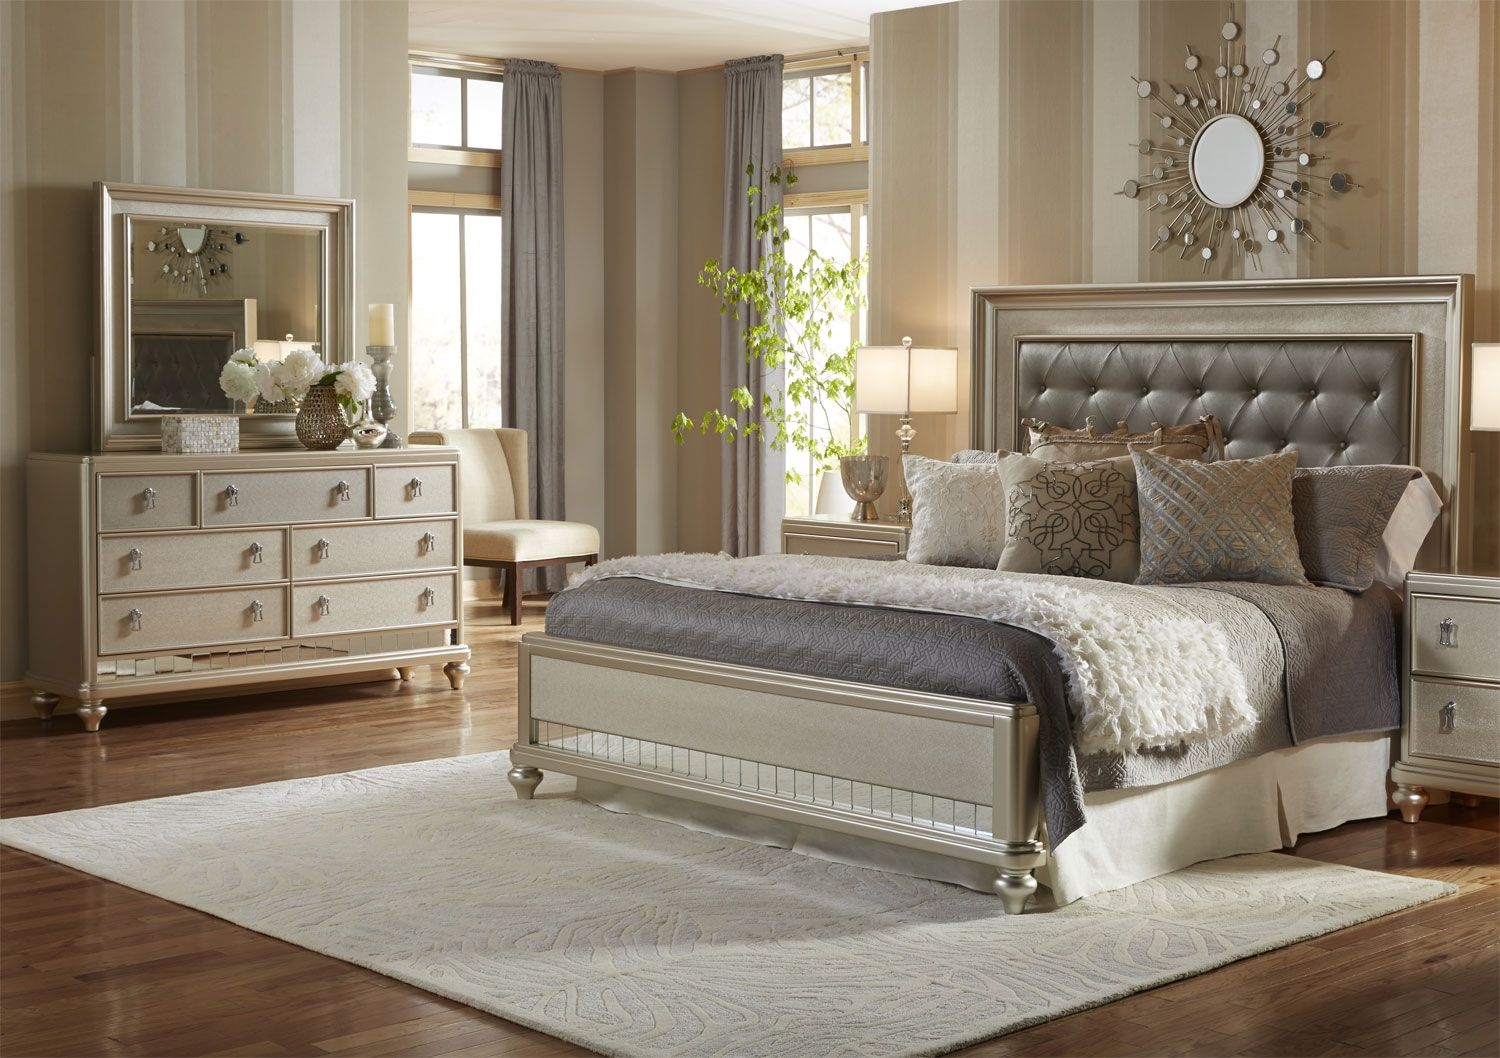 diva 5-piece queen bedroom package   auras, plush and drawers